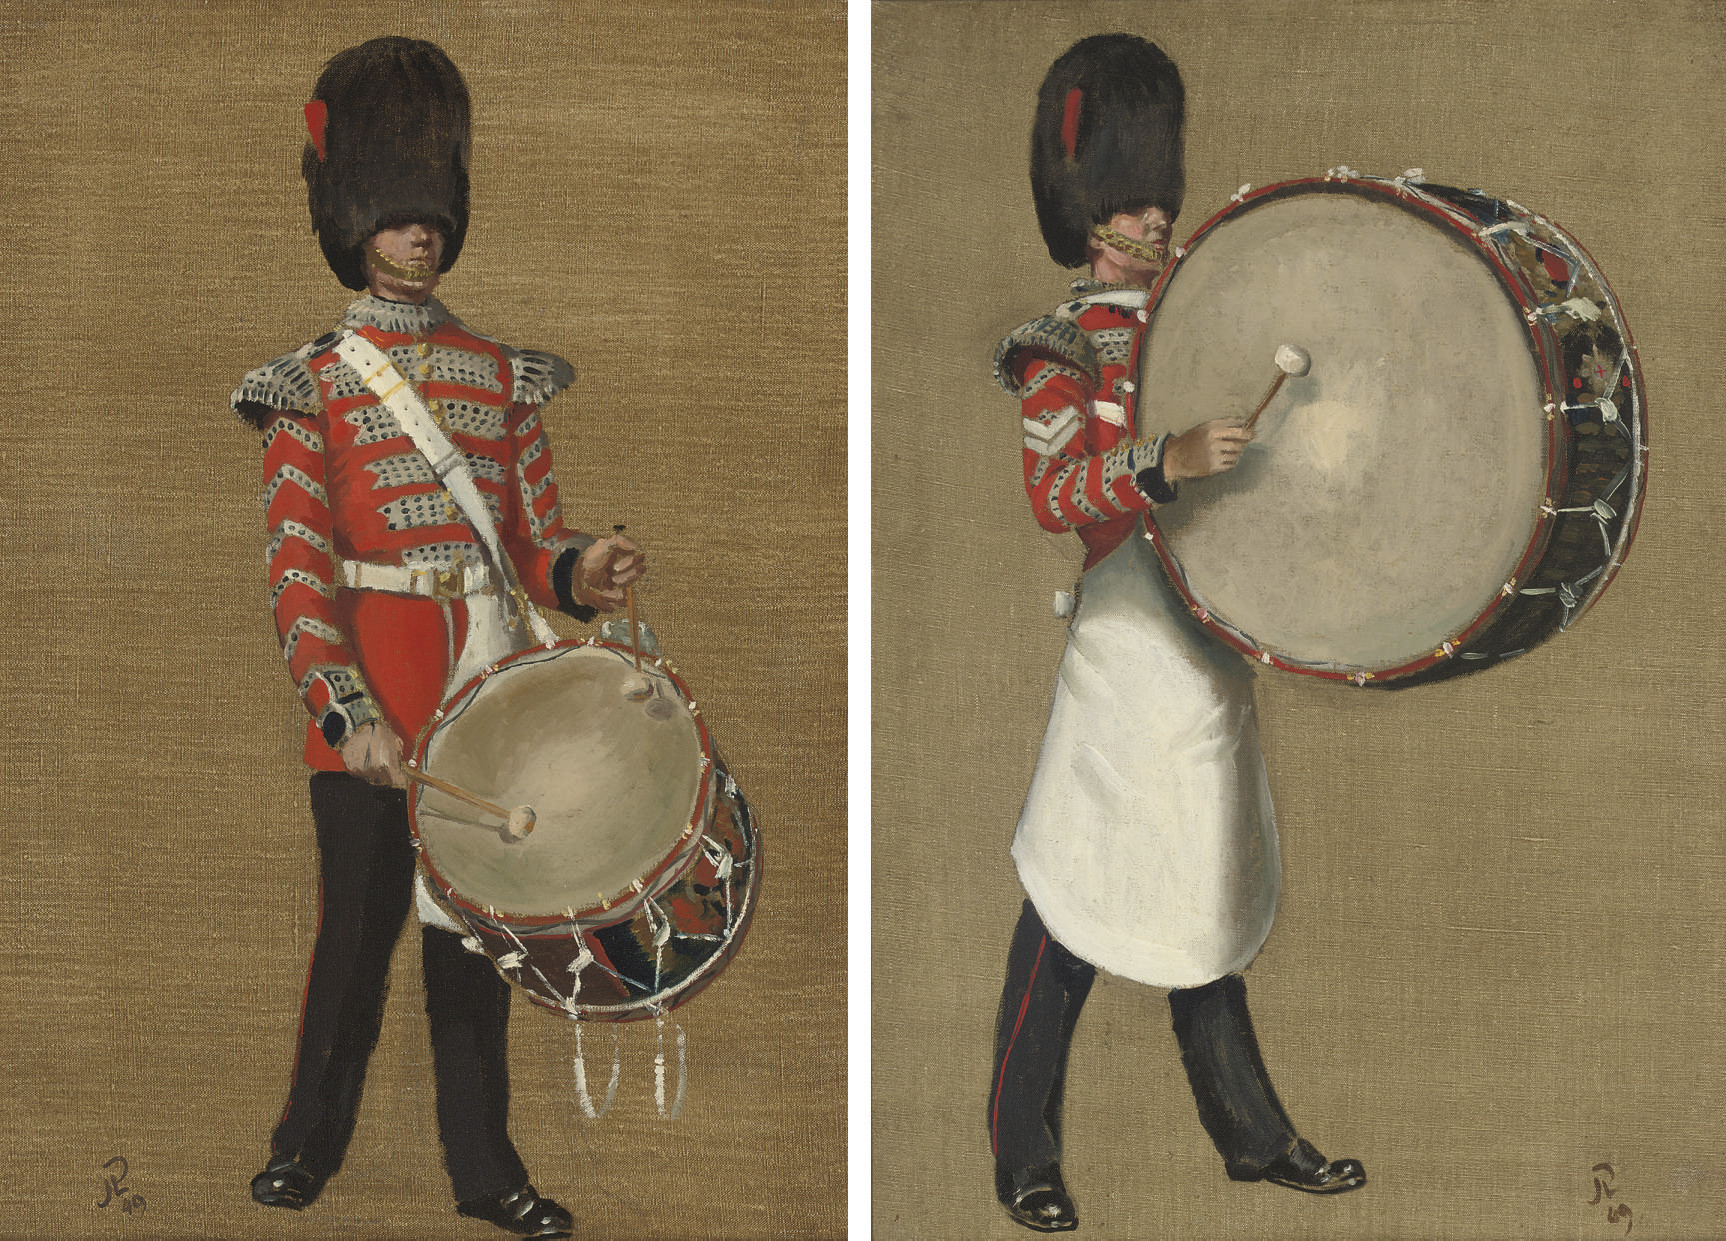 Coldstream Guards drummer; and Another similar